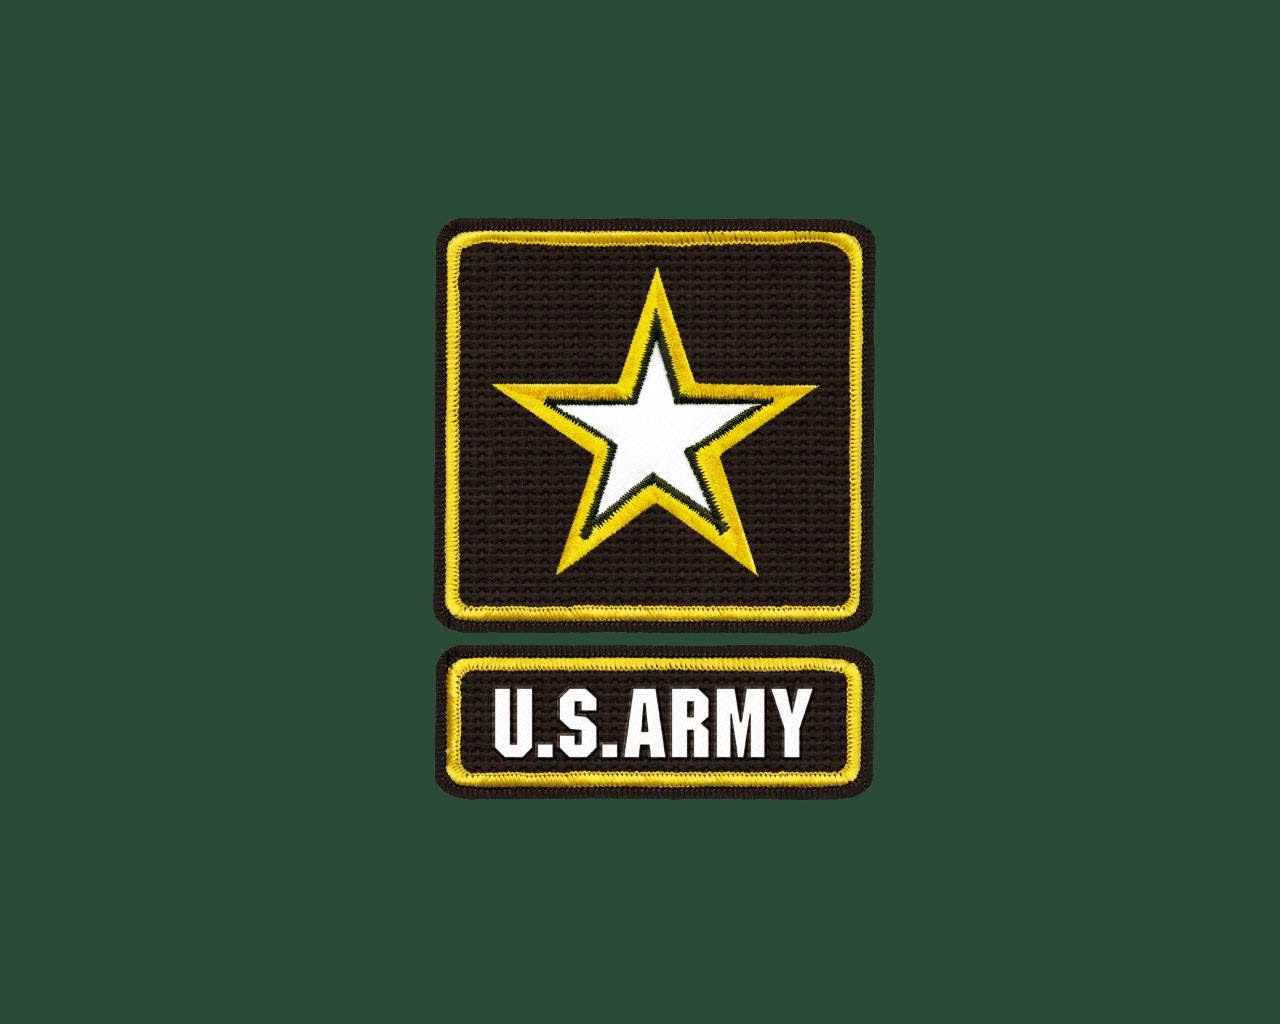 US Army Logo Wallpaper2jpg 1280x1024